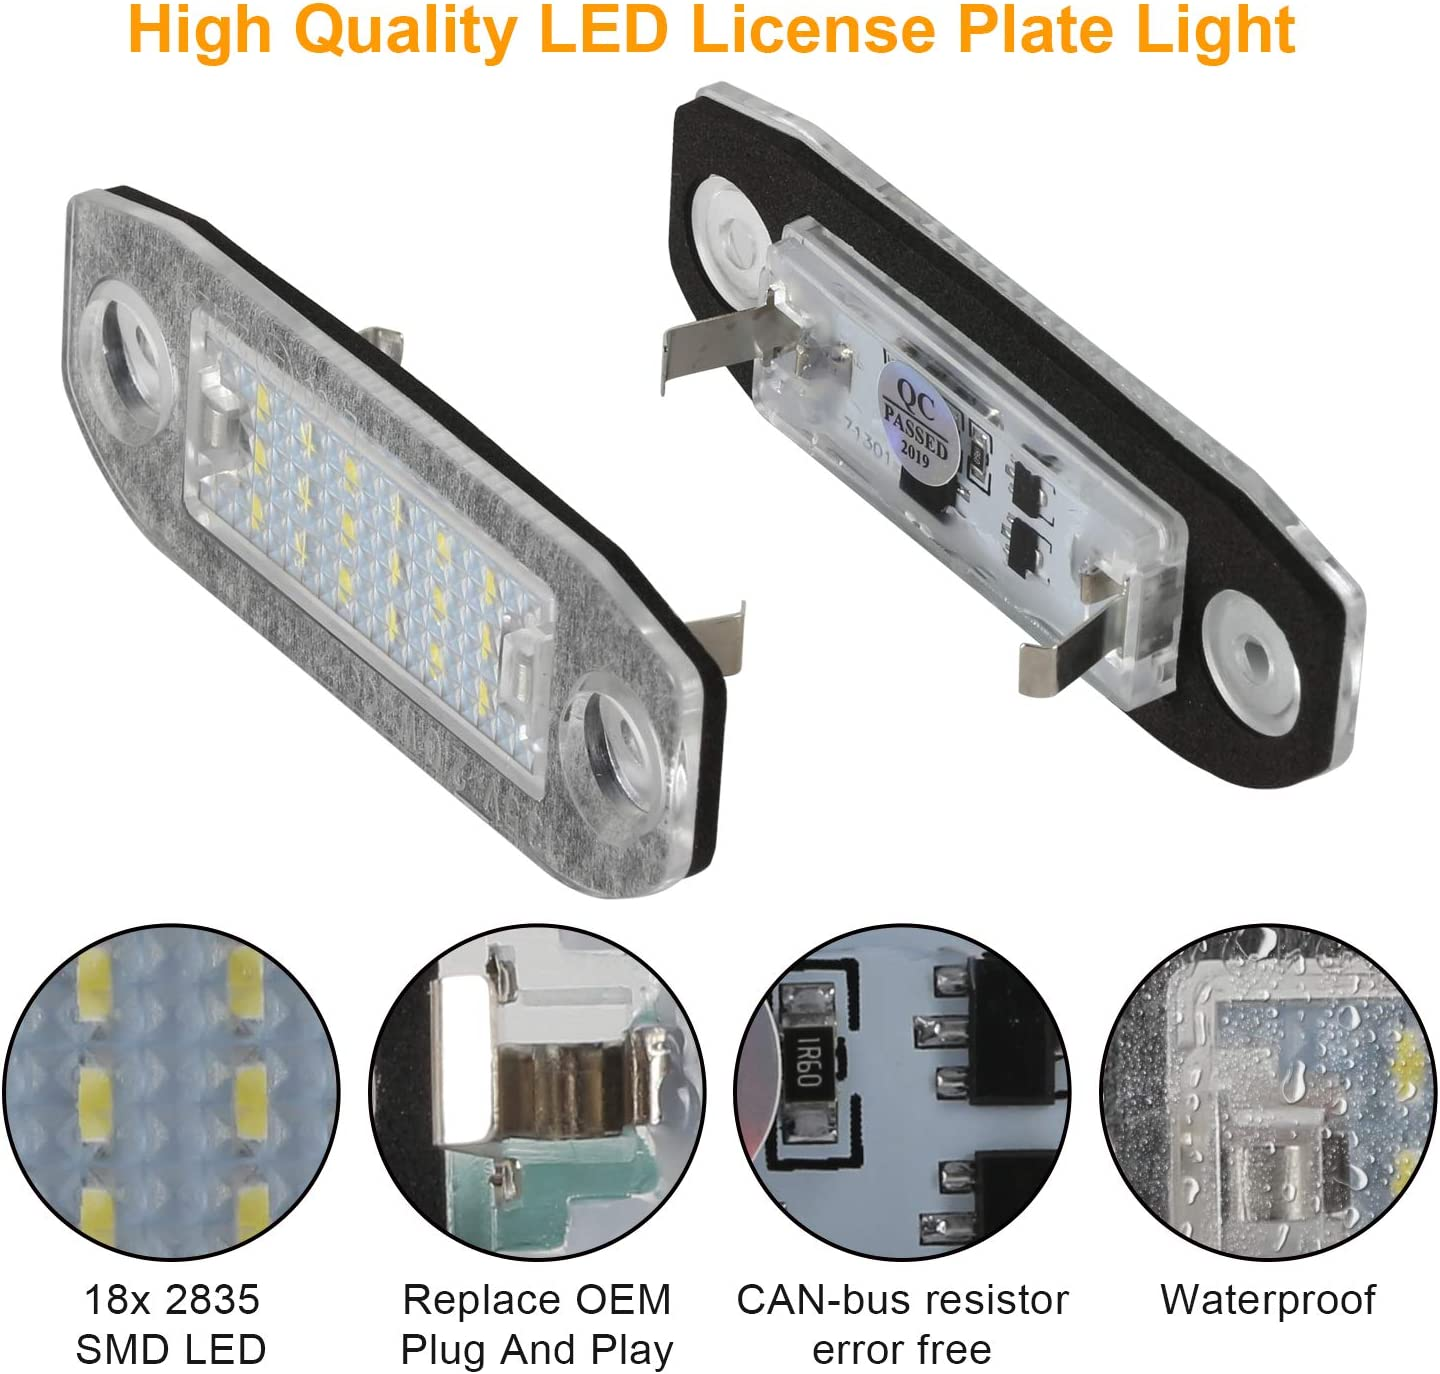 Feux de plaque dimmatriculation OZ-LAMPE 2pcs 18 Feux de plaque dimmatriculation /à LED 2835 SMD Compatible avec VOLV-O S80 1998~2015 V70 XC60 XC70 XC90 V50 S40 C30 2006-2010 avant le lifting